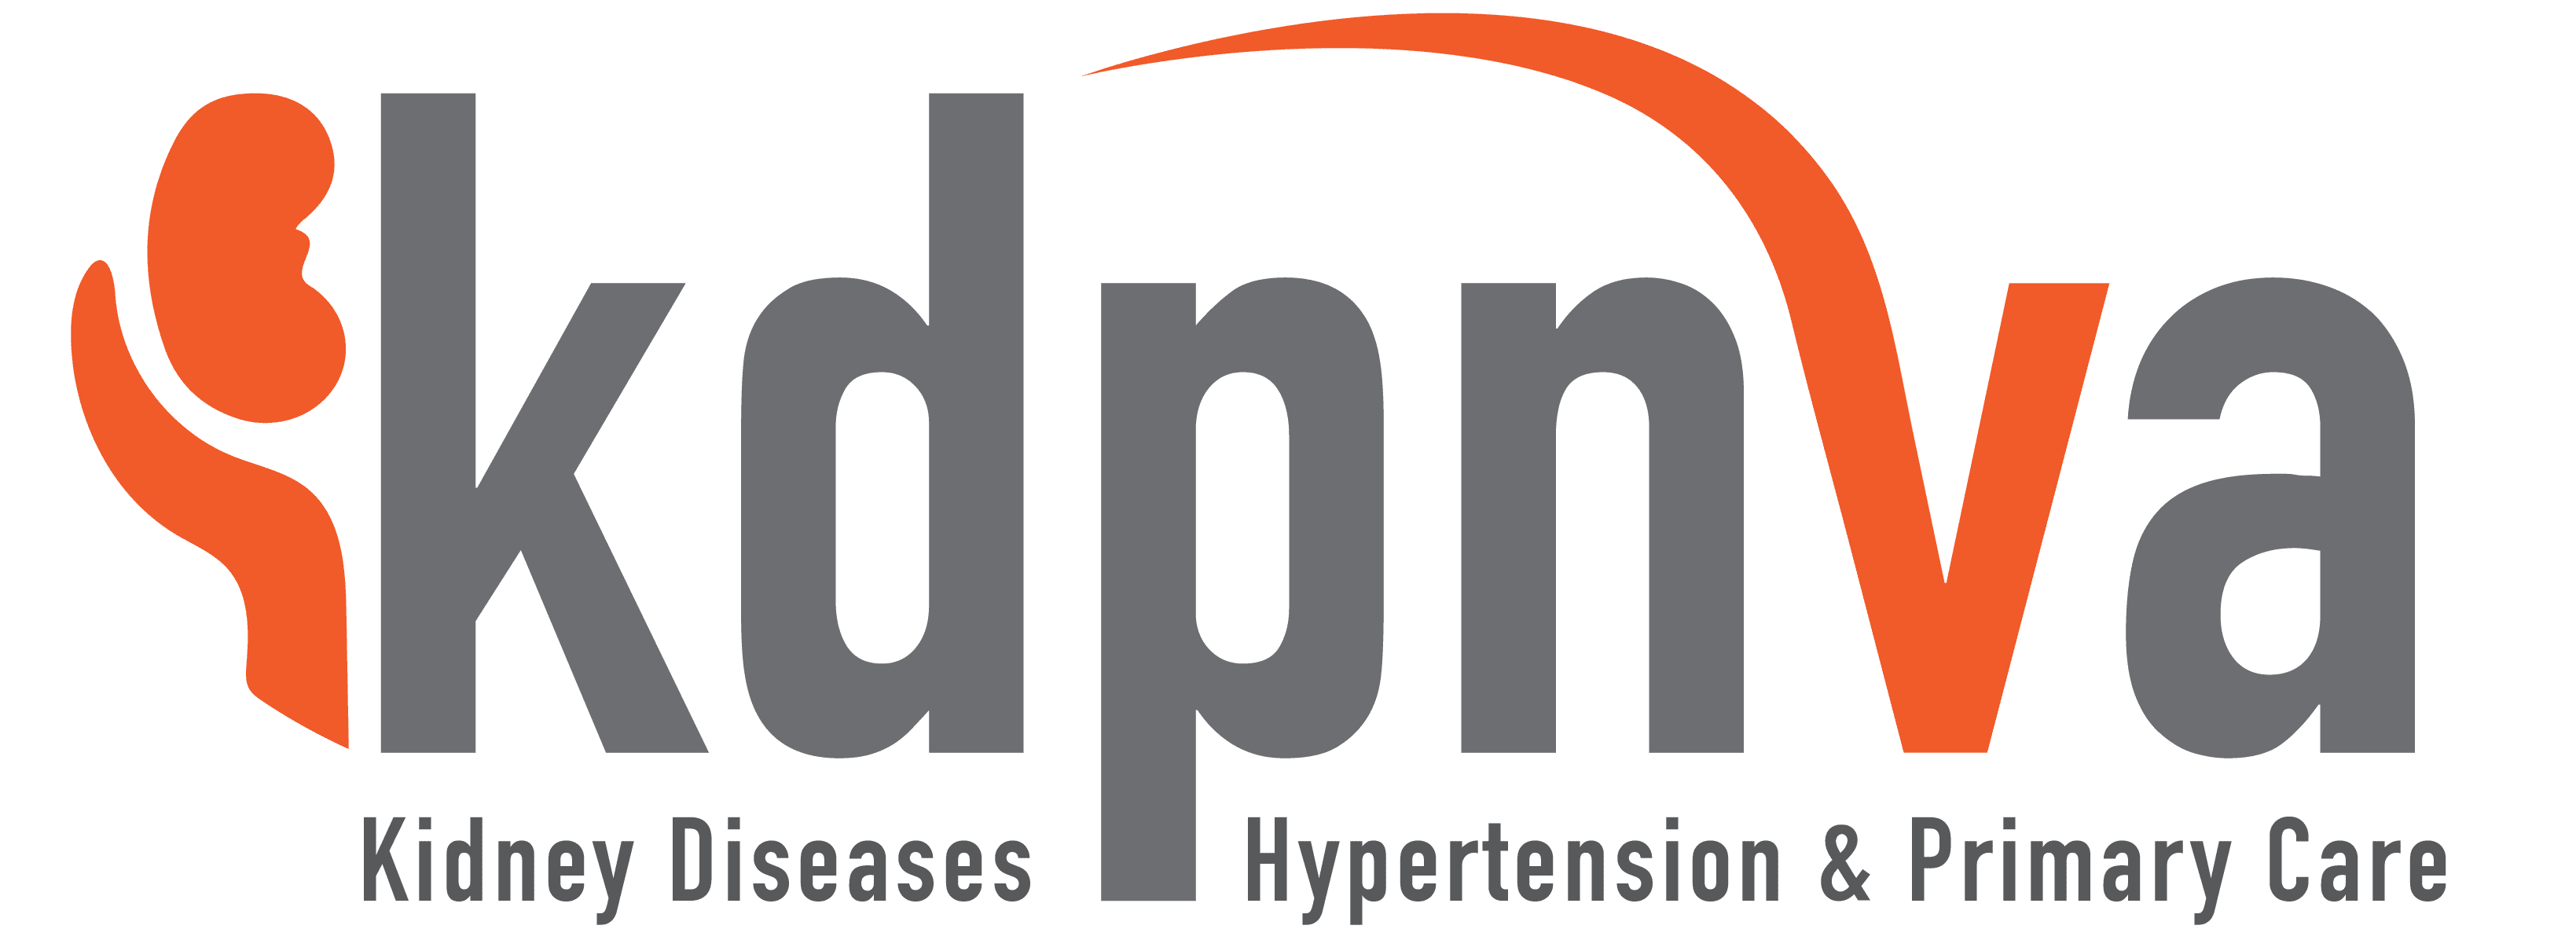 Kidney Diseases, Hypertension & Primary Care of Virginia, LLC